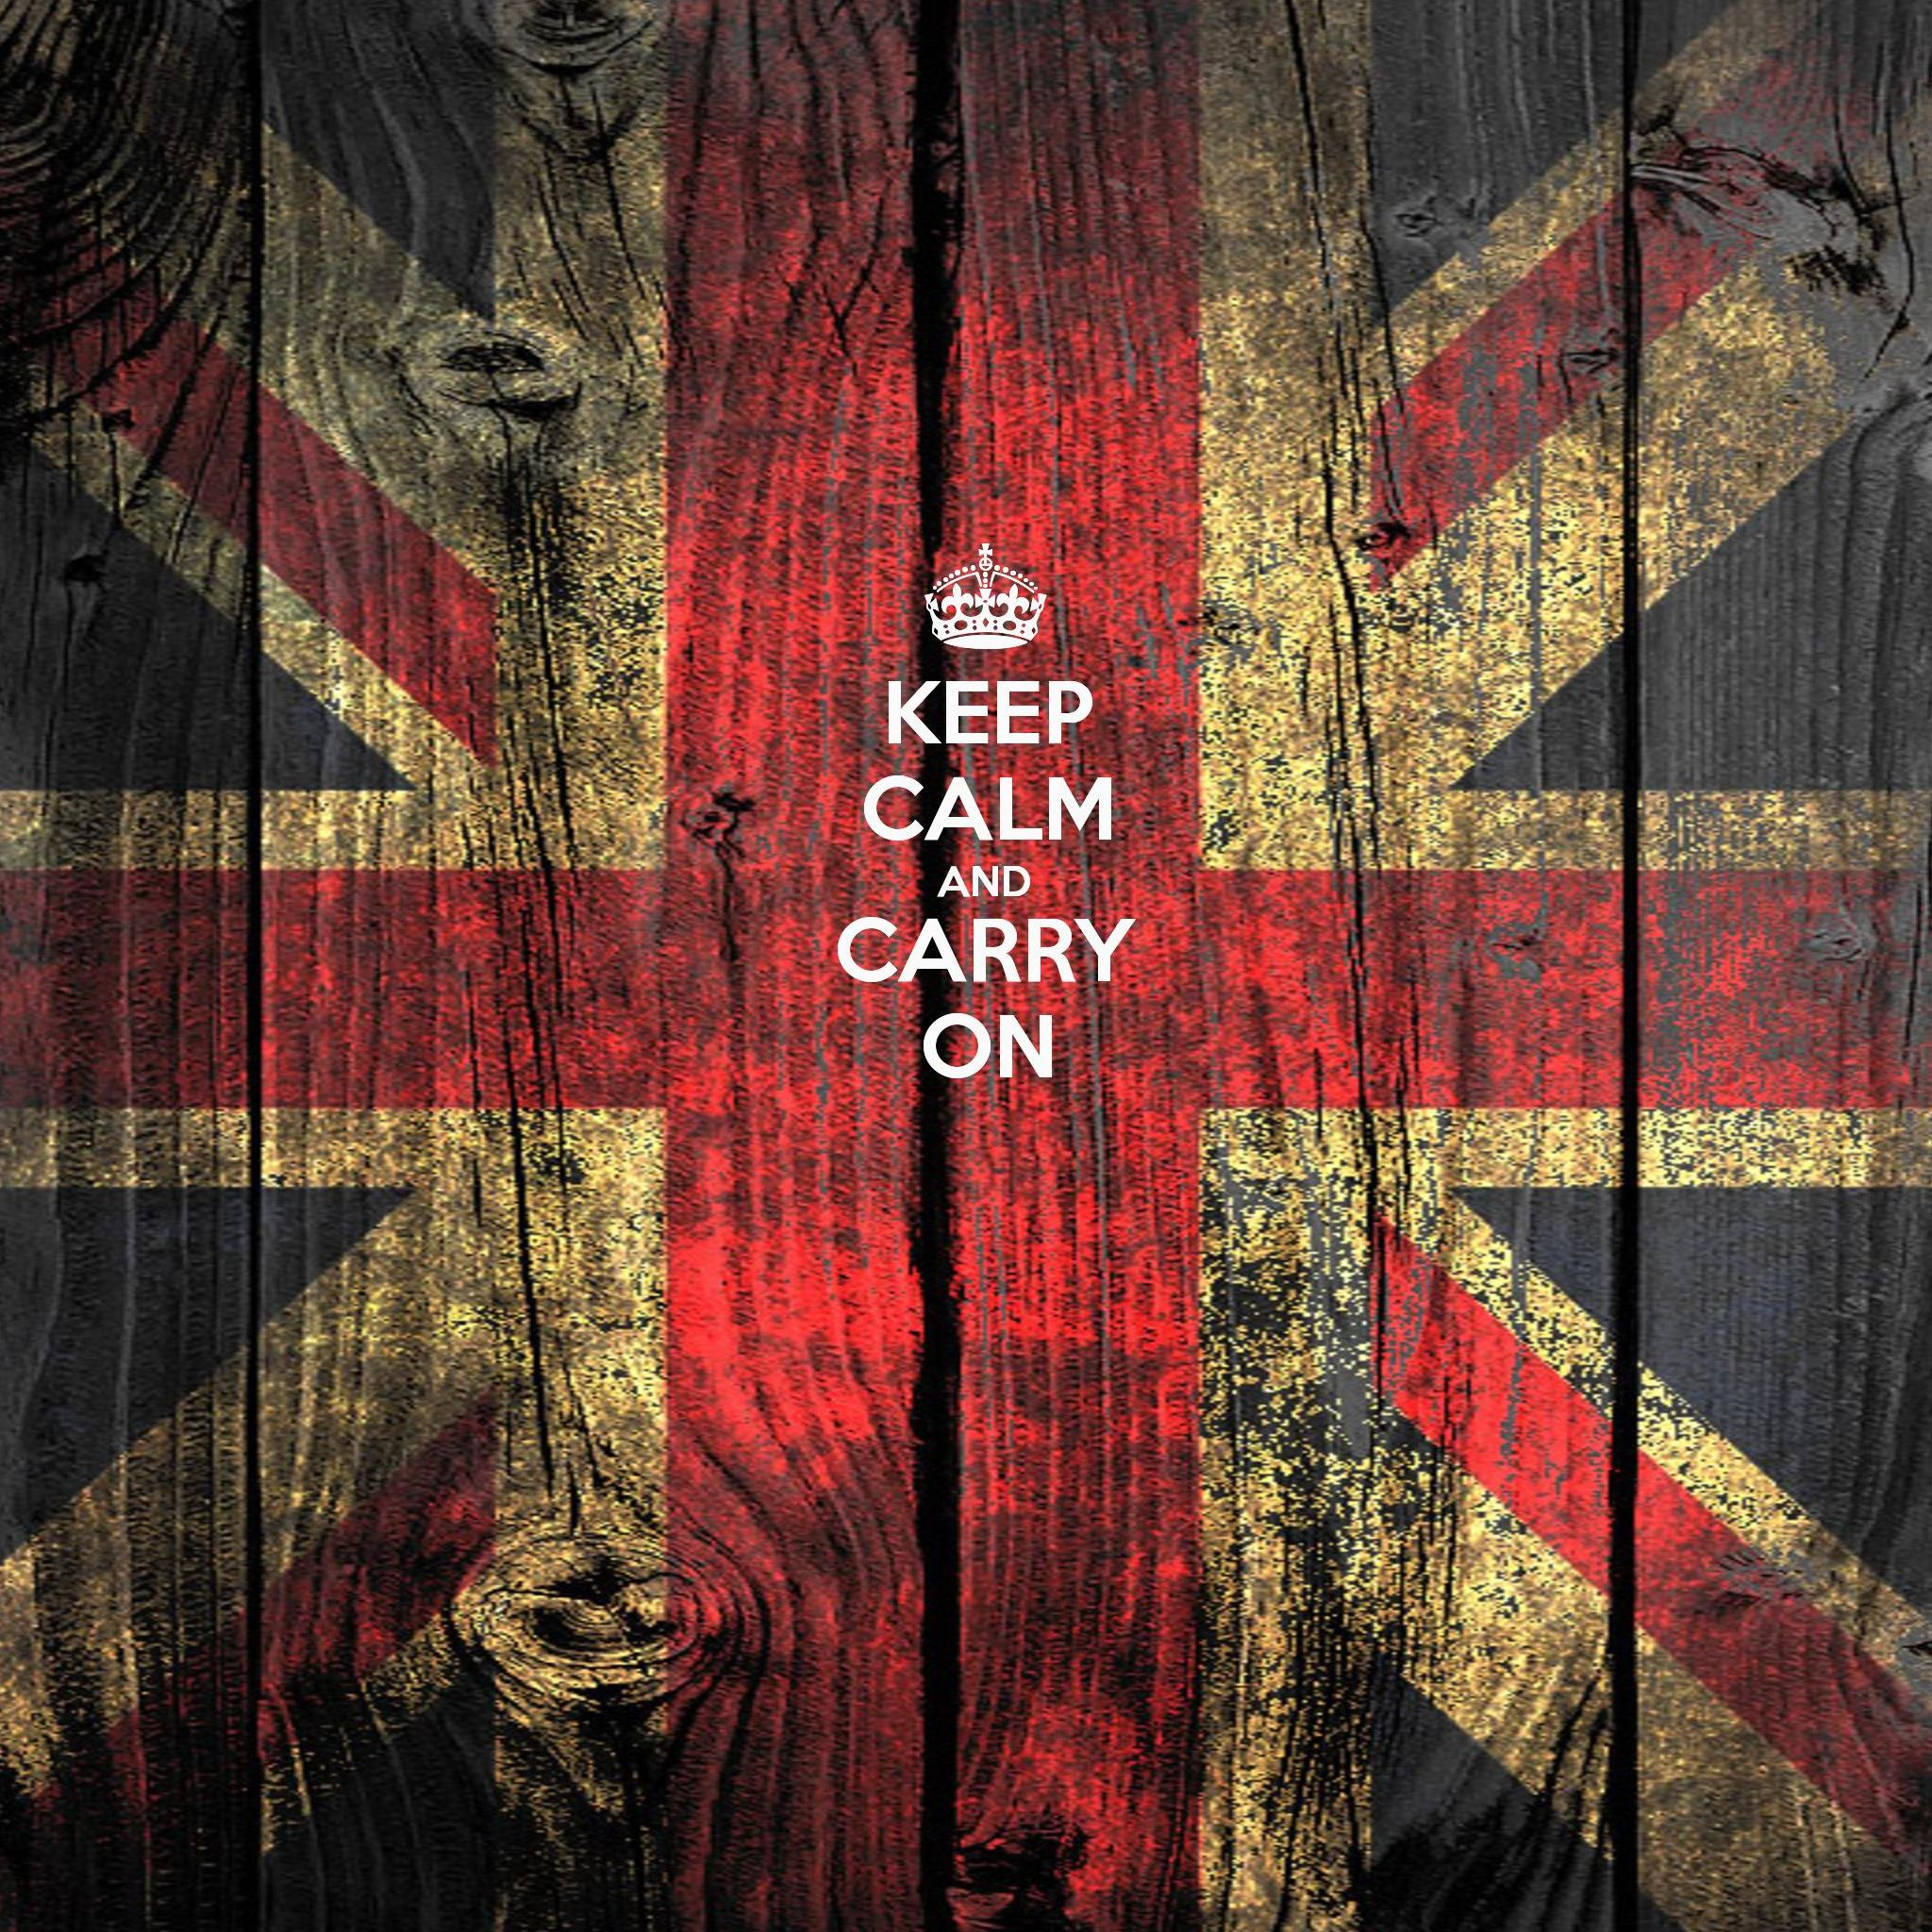 Keep Calm And Carry On Quotes iPad Air wallpaper